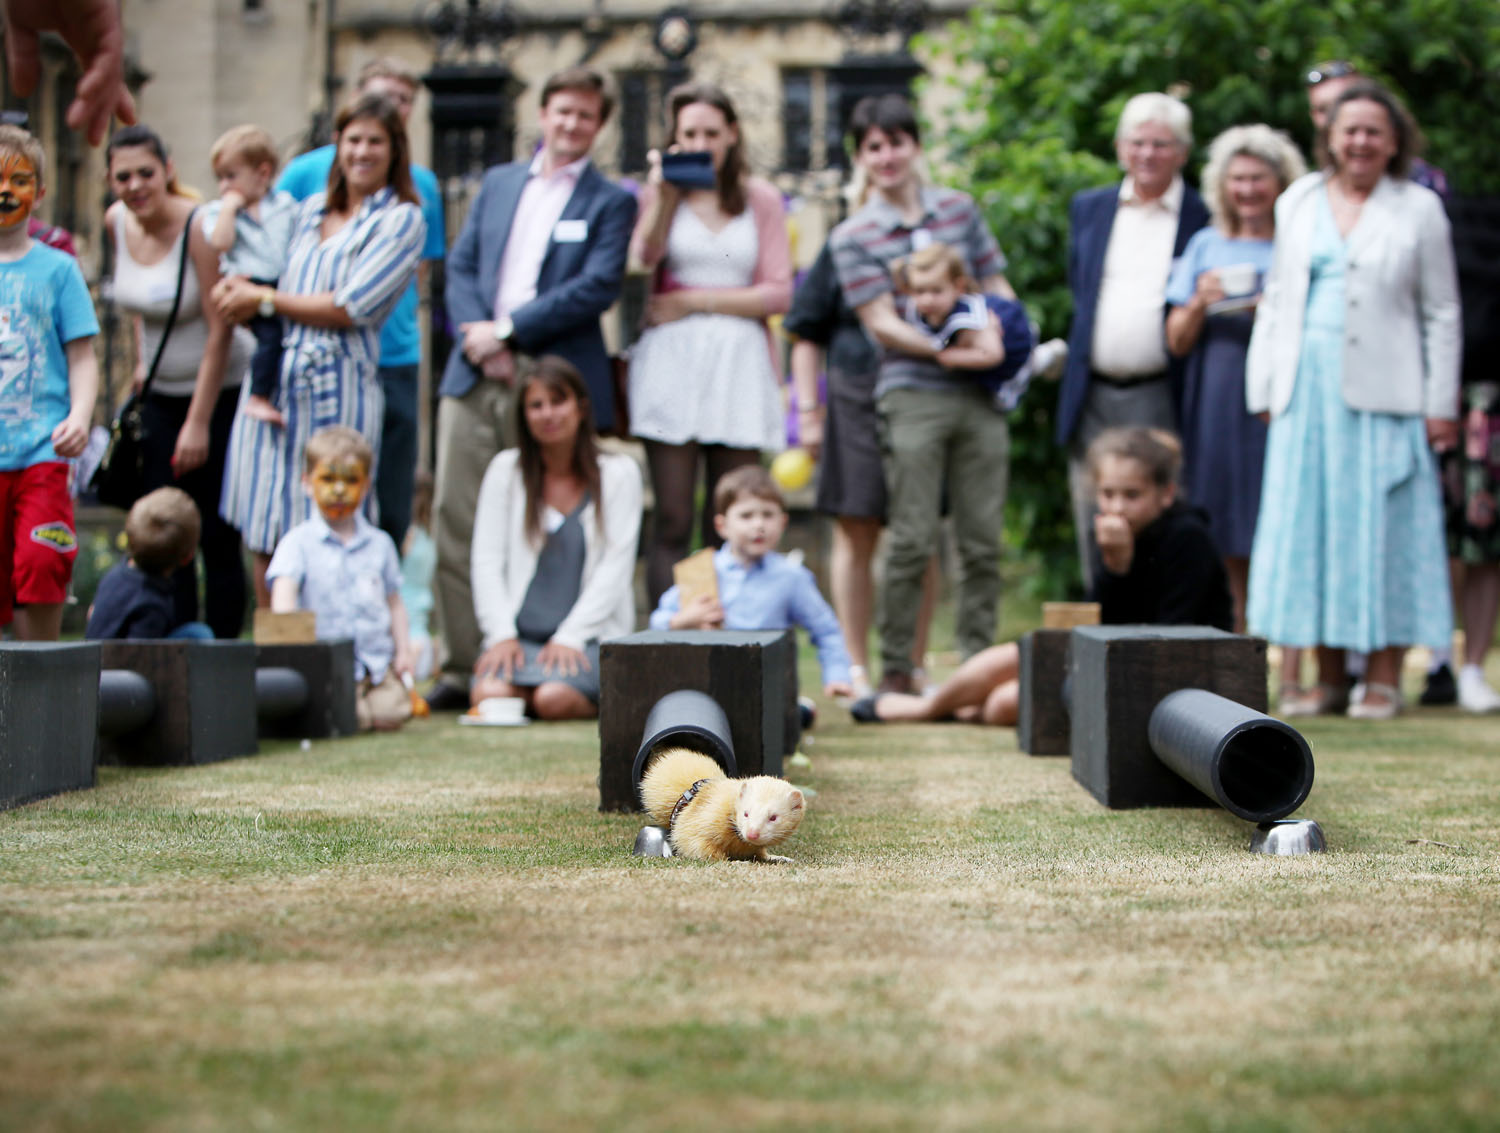 Photography of Merton College and the Merton College/Society 2017 Family Fayre, held at Merton College Oxford on the 25th June 2017.